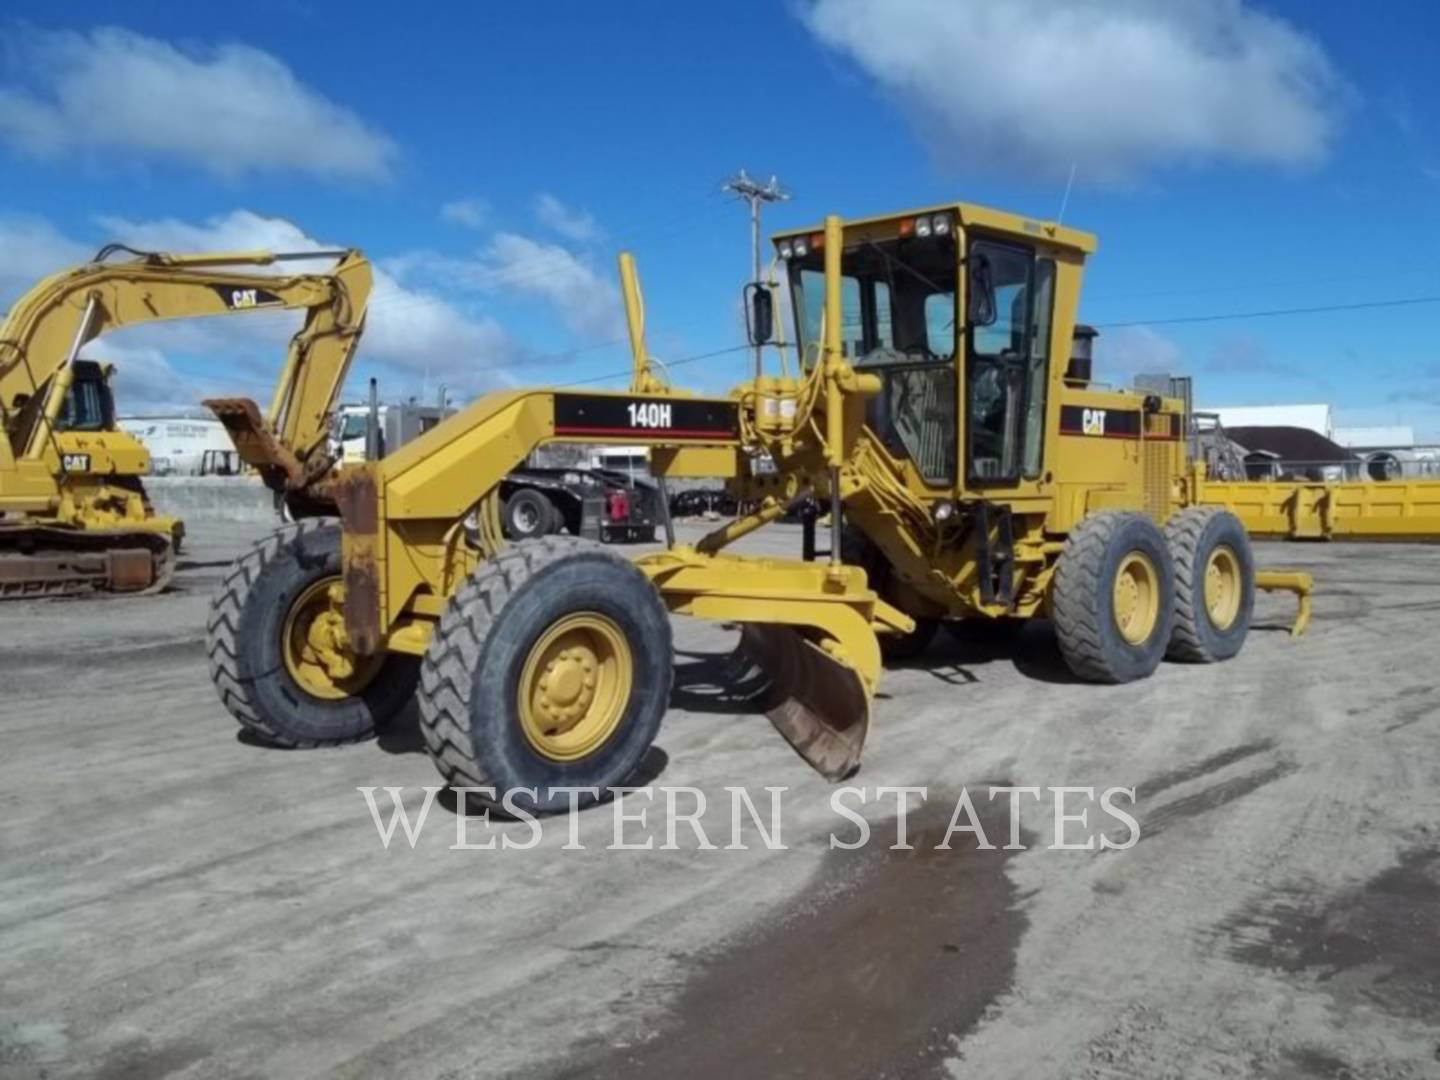 1997 CATERPILLAR 140HNA image0